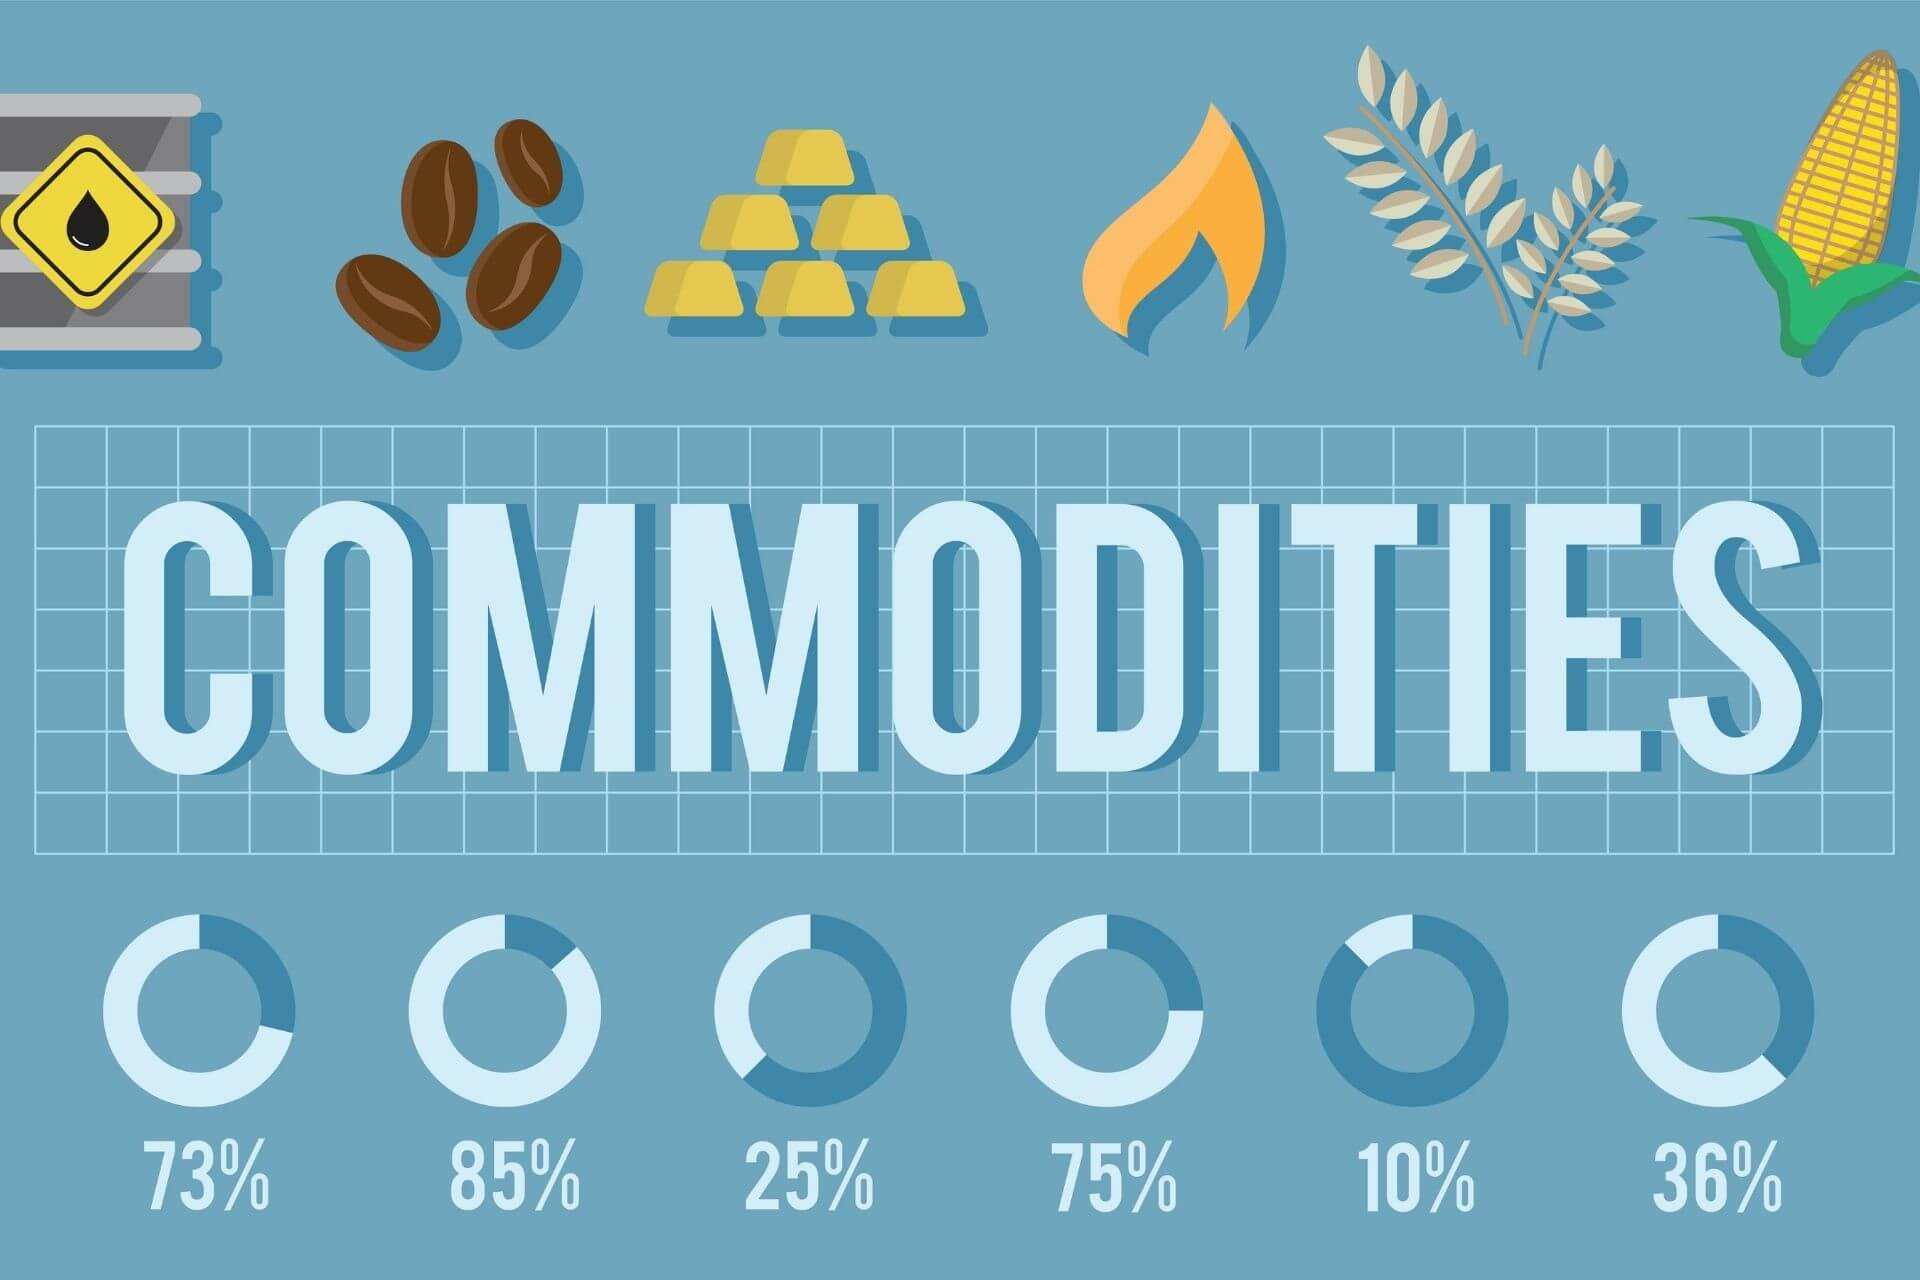 what are commodities and What is Commodity Trading?